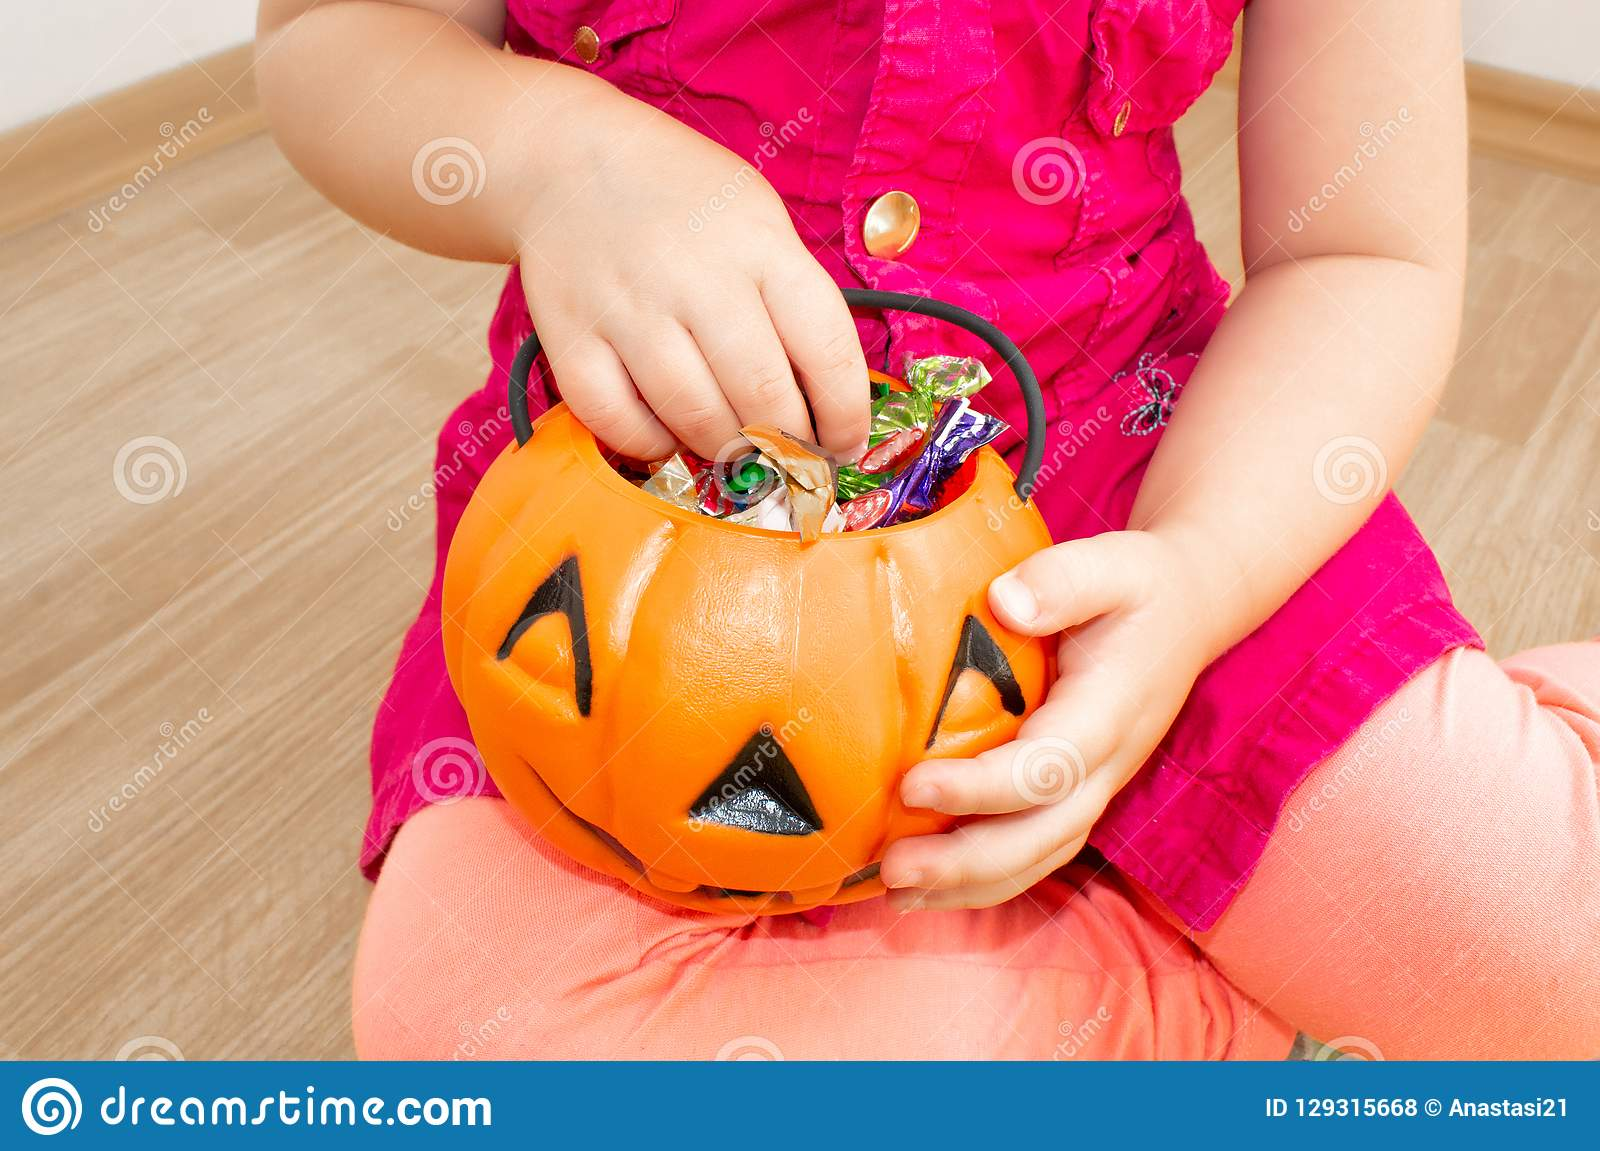 Little beautiful girl sitting with a pumpkin with candies in her hands, on Halloween.